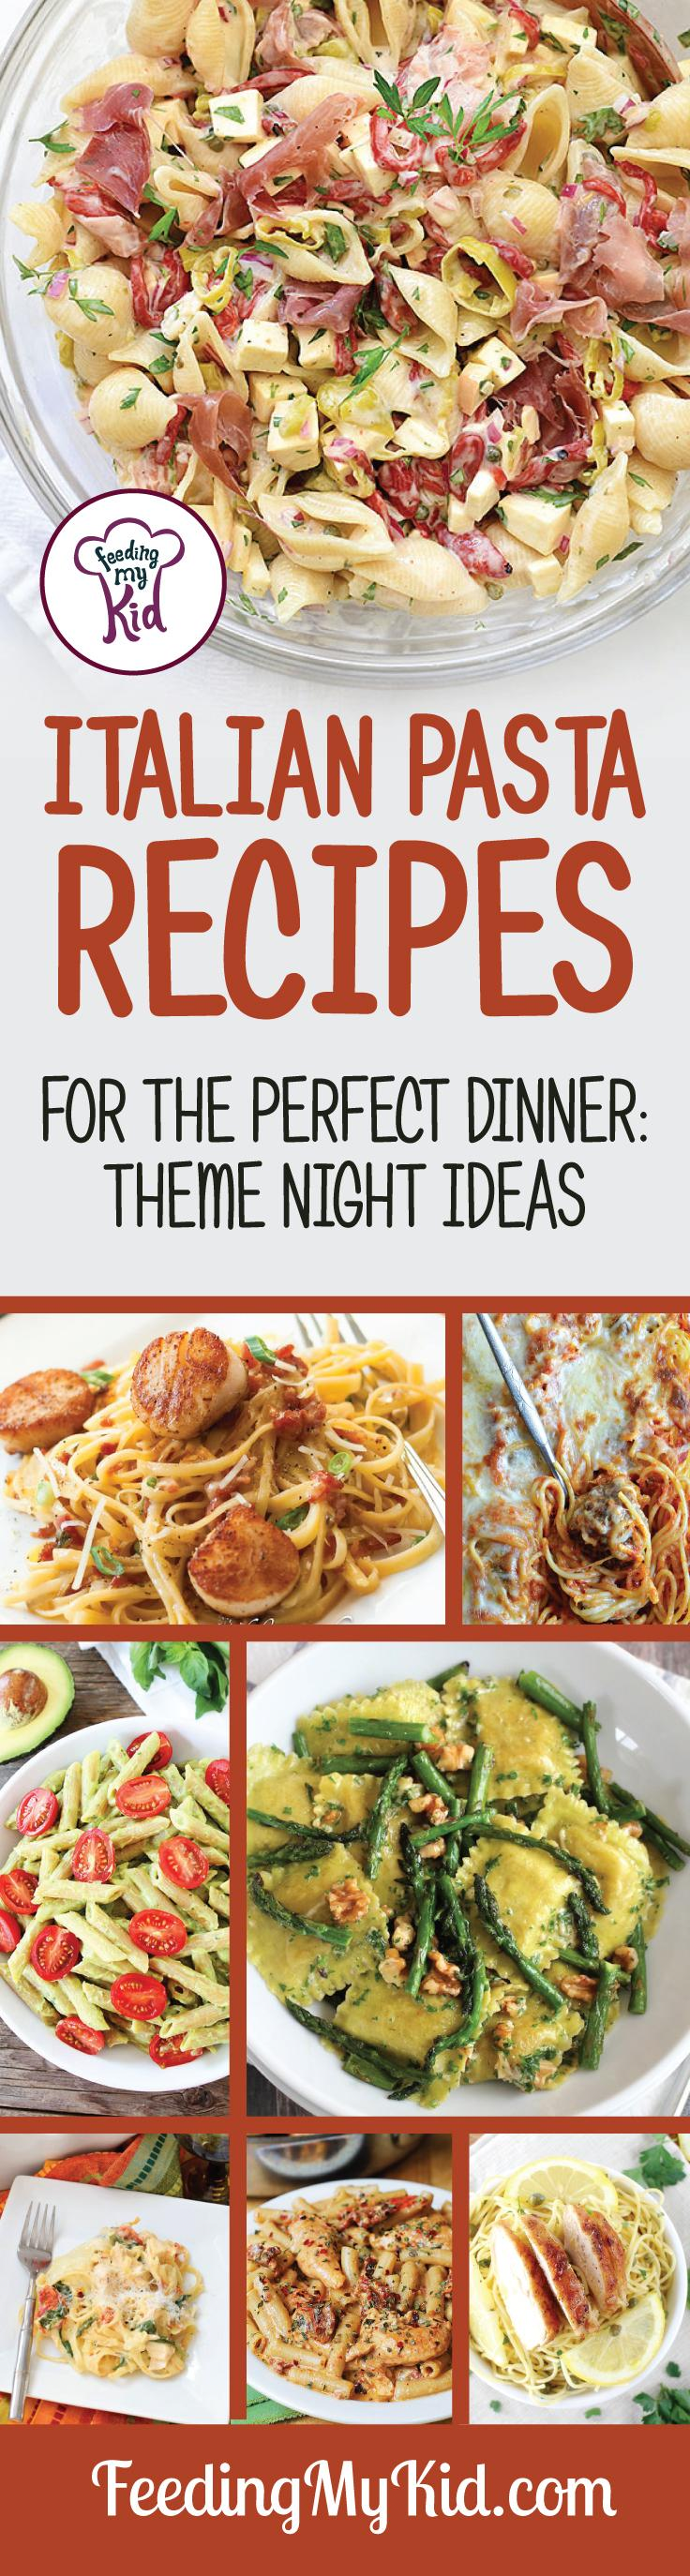 These Italian pasta recipes will make the perfect lunch or the perfect dinner. These pasta recipes are sure to please the whole family! Give them try! Feeding My Kid is a filled with all the information you need about how to raise your kids, from healthy tips to nutritious recipes. #FeedingMyKid #italianrecipes #italianfood #italianpastas